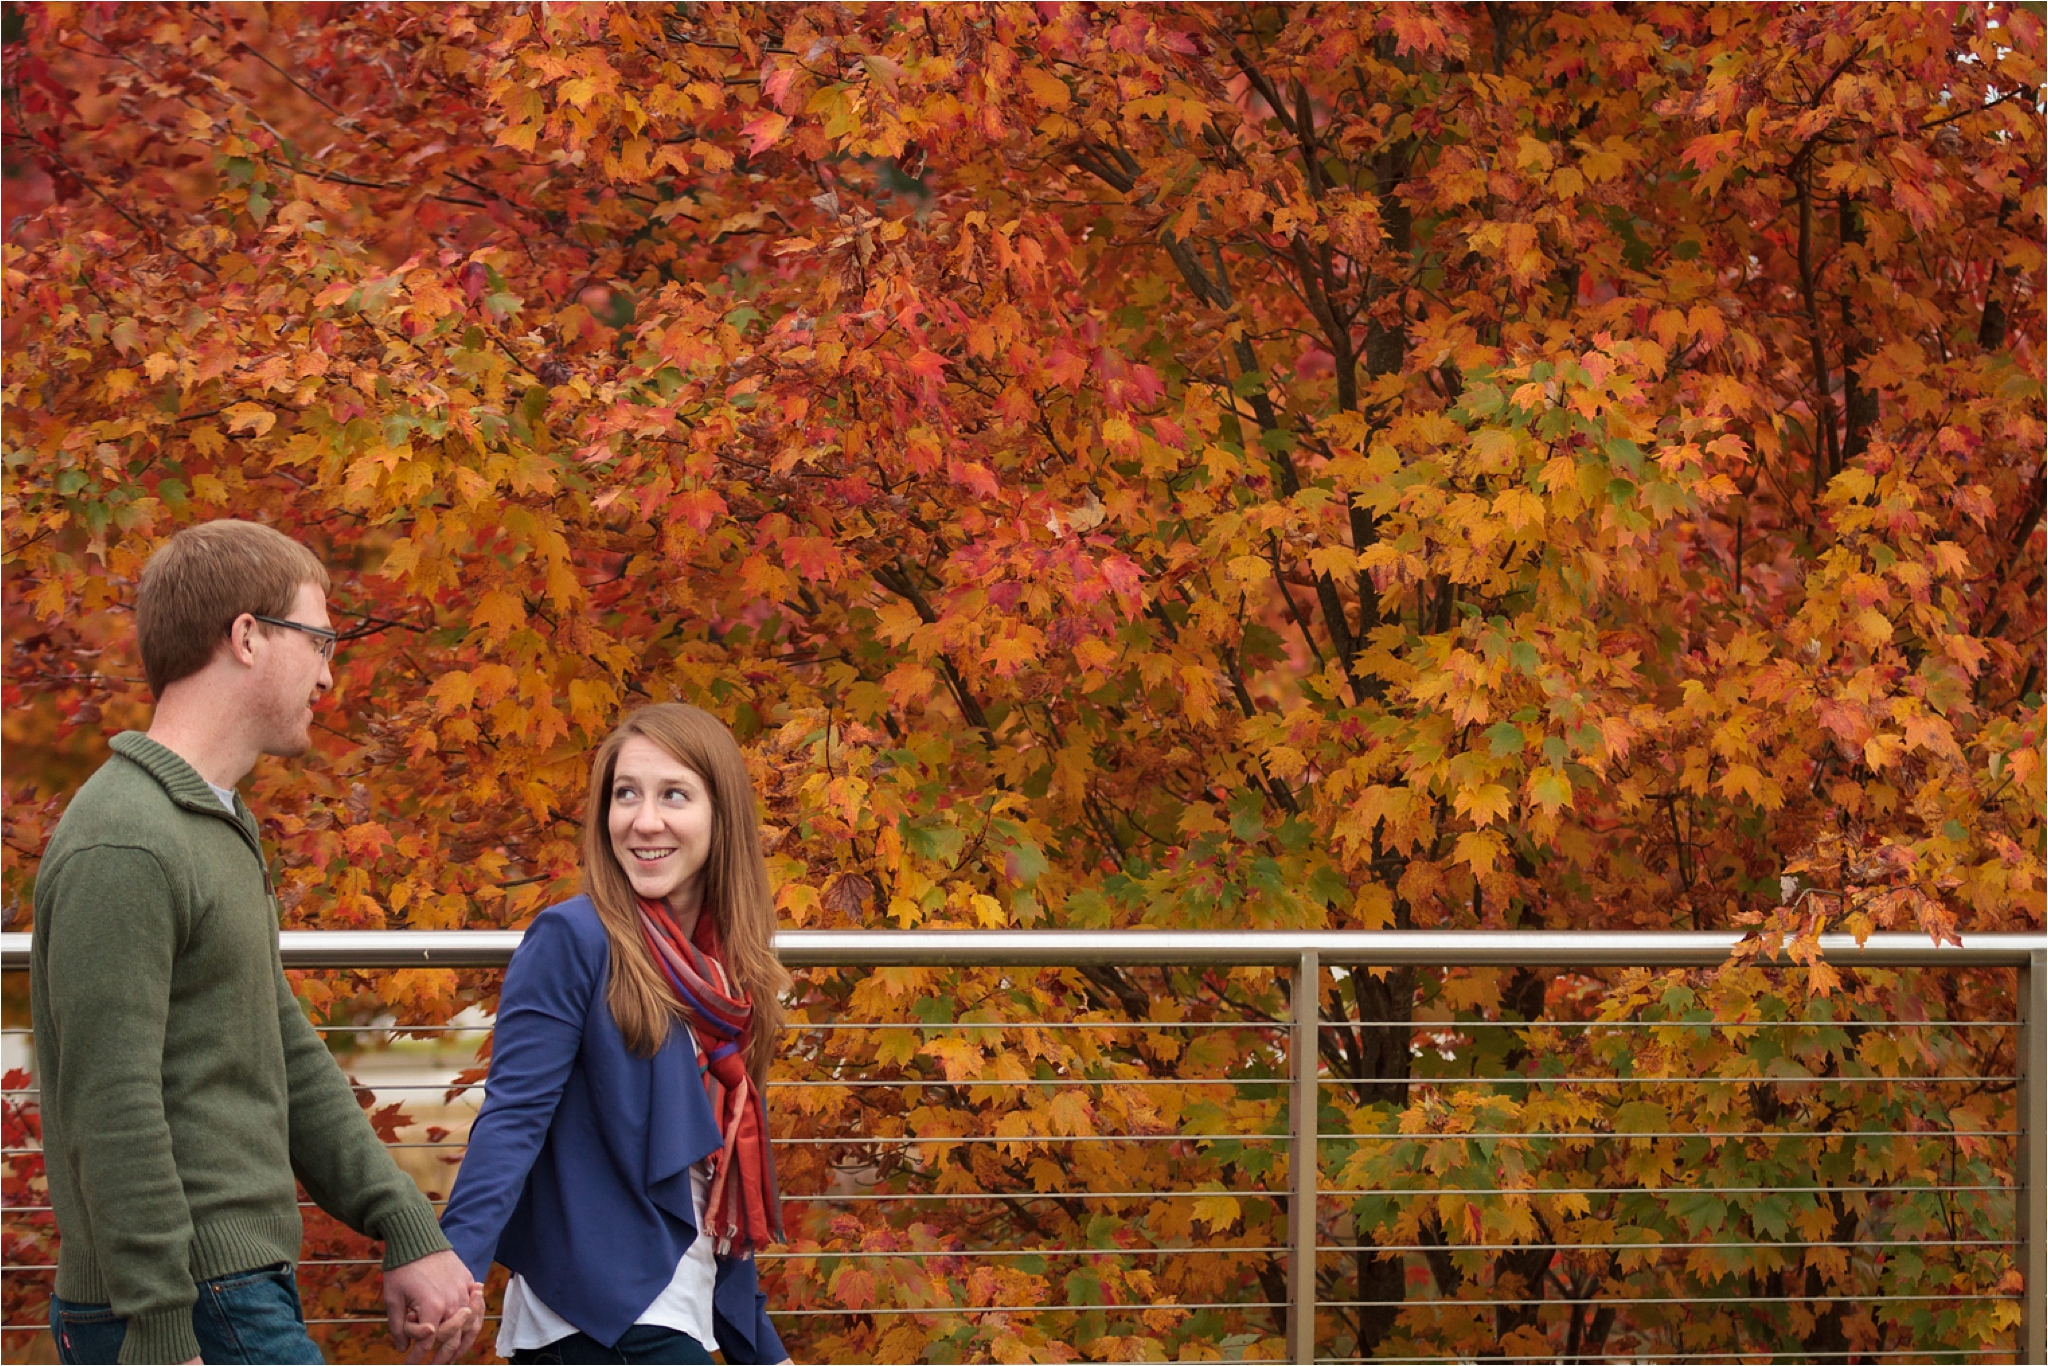 greenville-engagement-session-fall-colors-10_blog.jpg